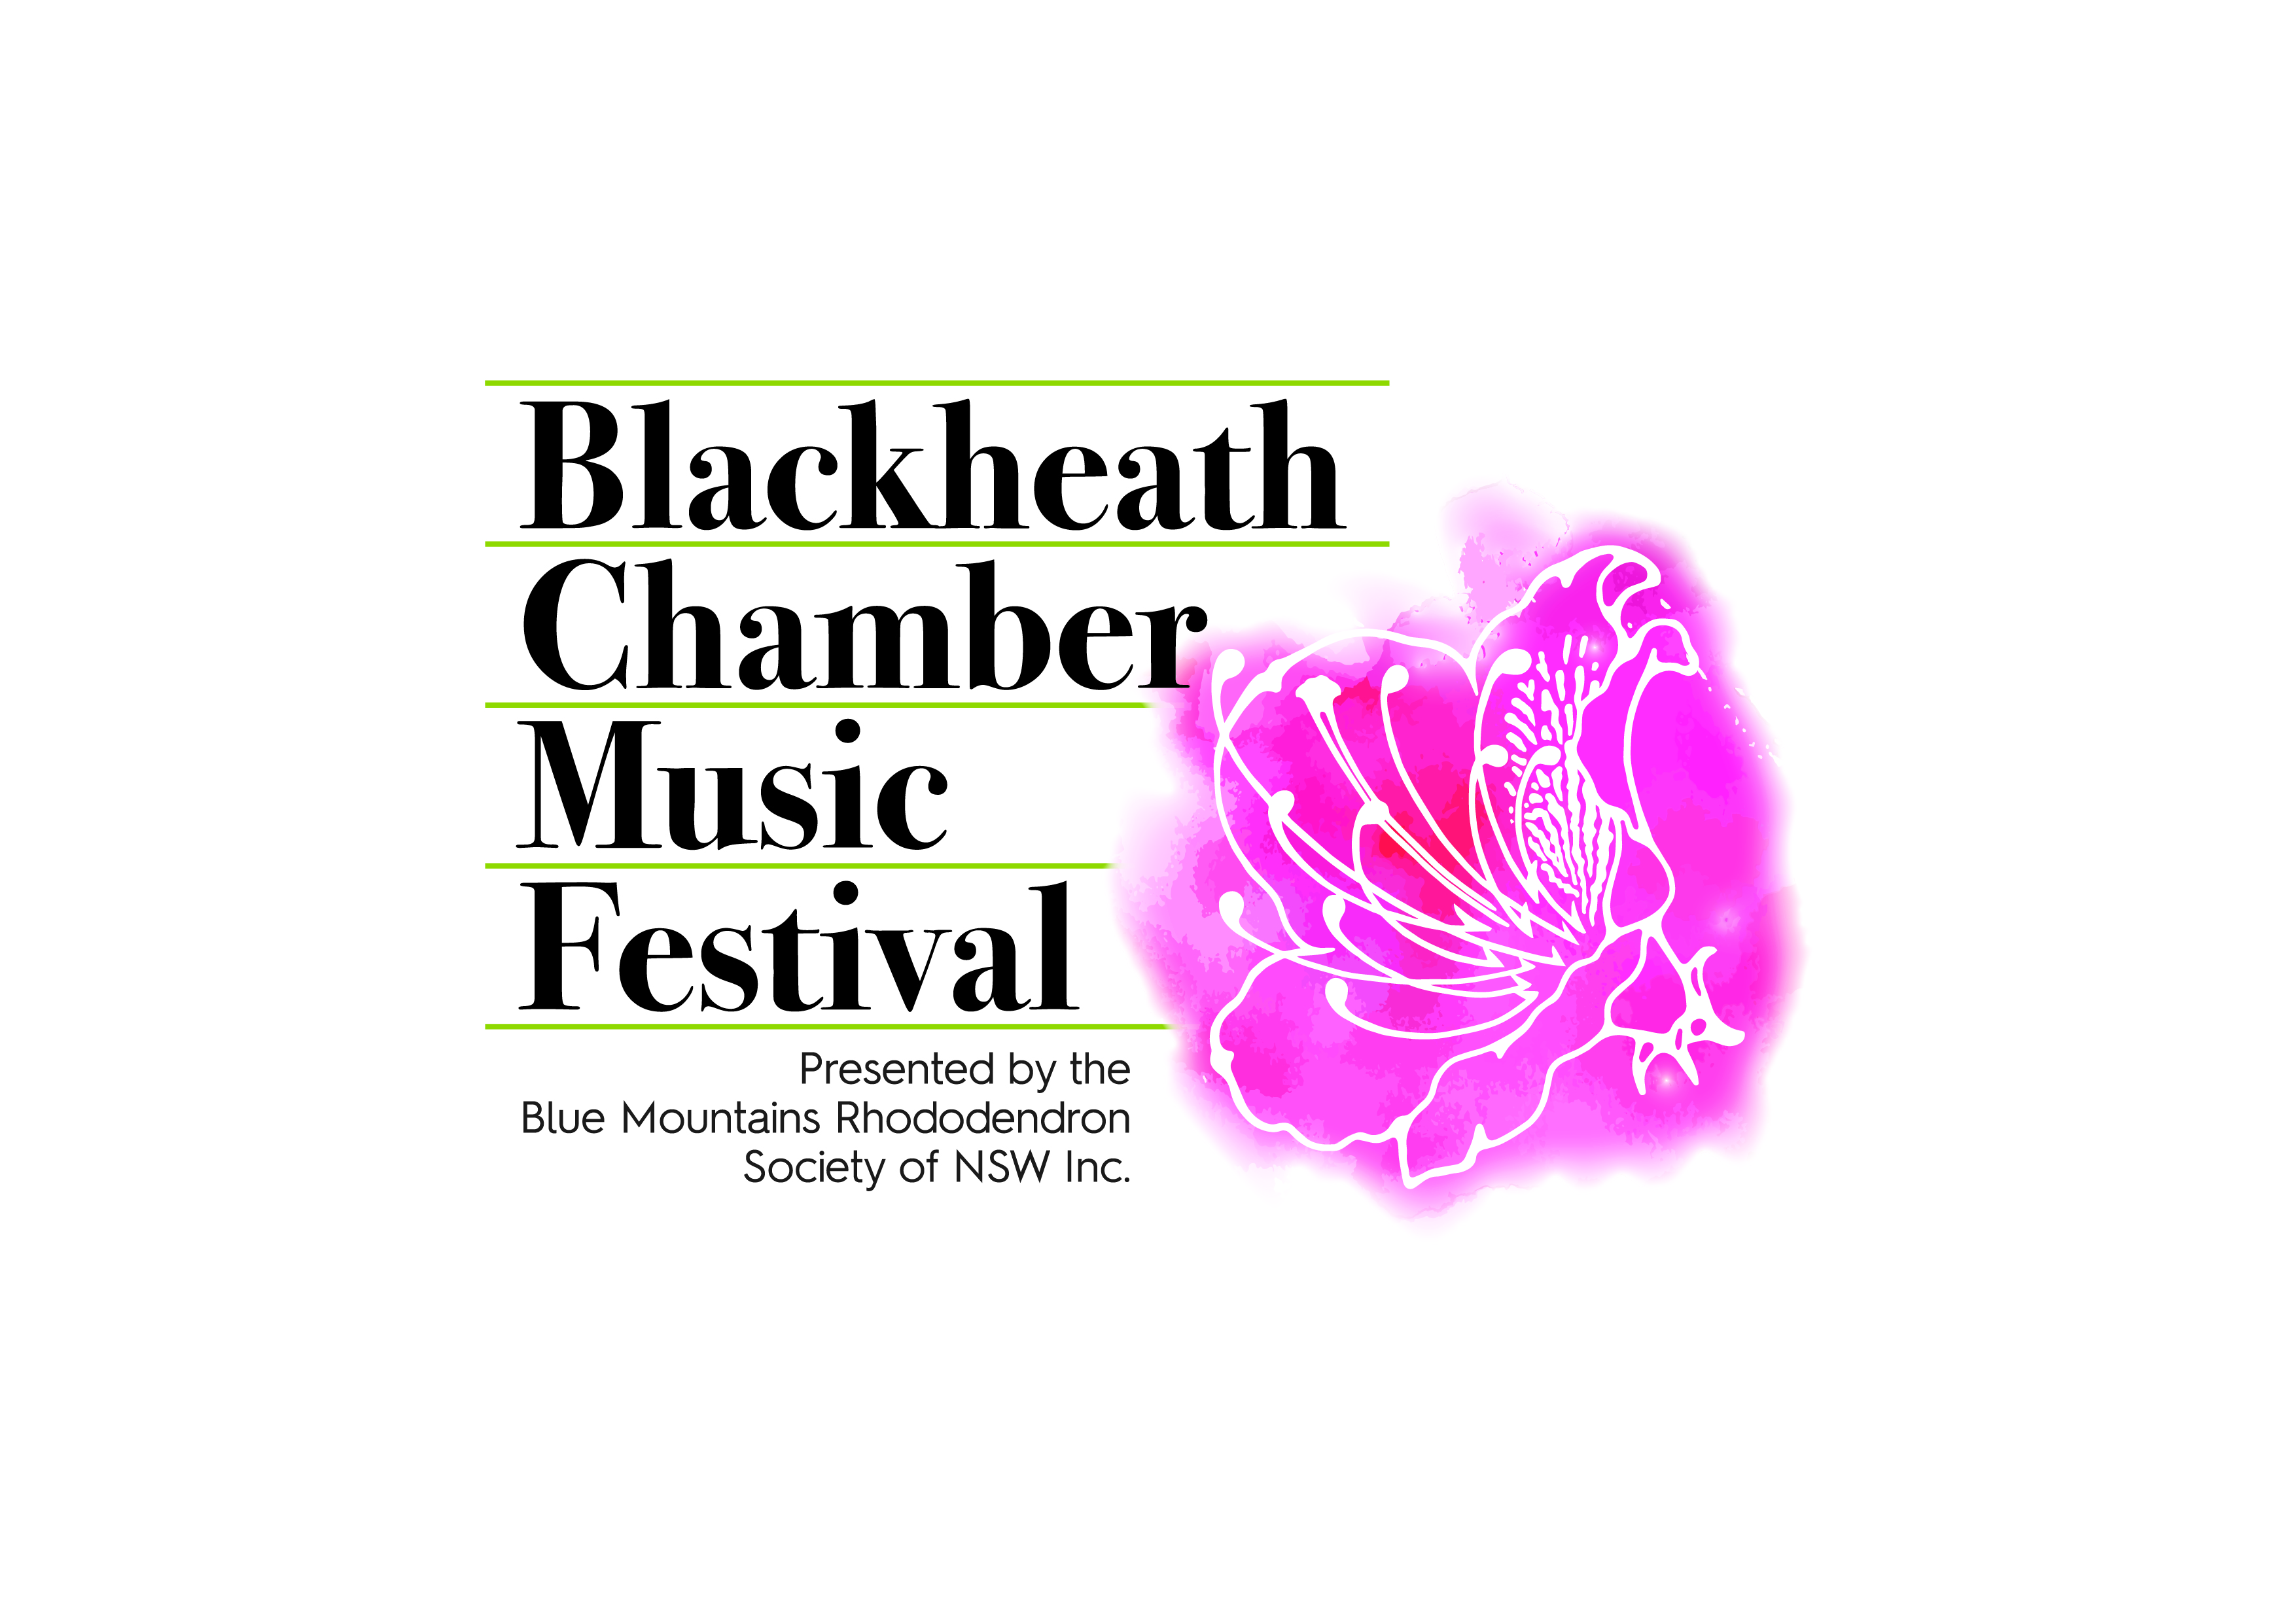 Blackheath Chamber Music Festival